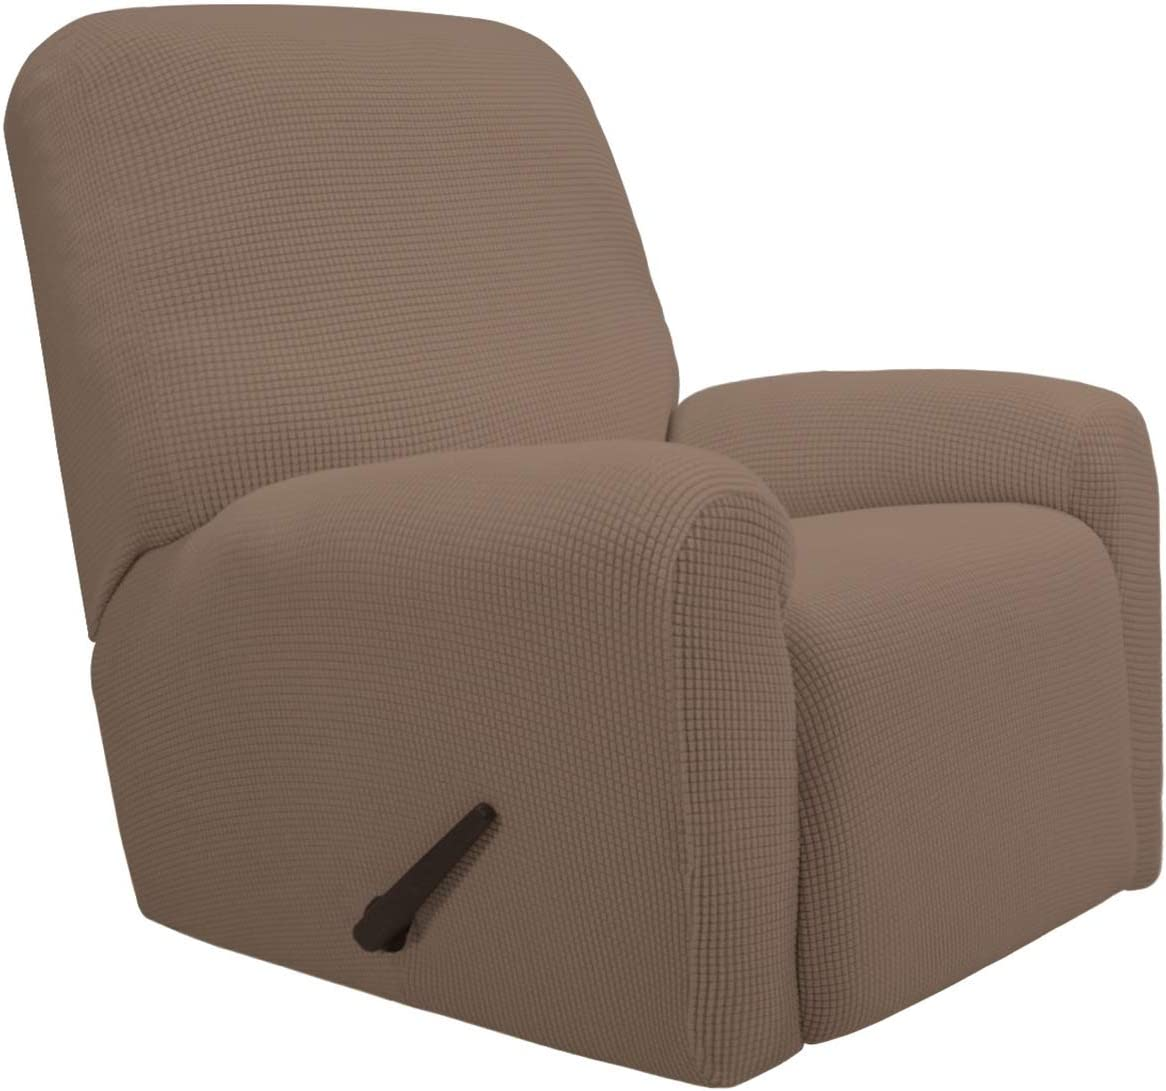 PureFit Stretch Recliner Sofa Slipcover with Pocket – Spandex Jacquard Non Slip Soft Couch Sofa Cover, Washable Furniture Protector with Elastic Bottom for Kids (Recliner, Camel)